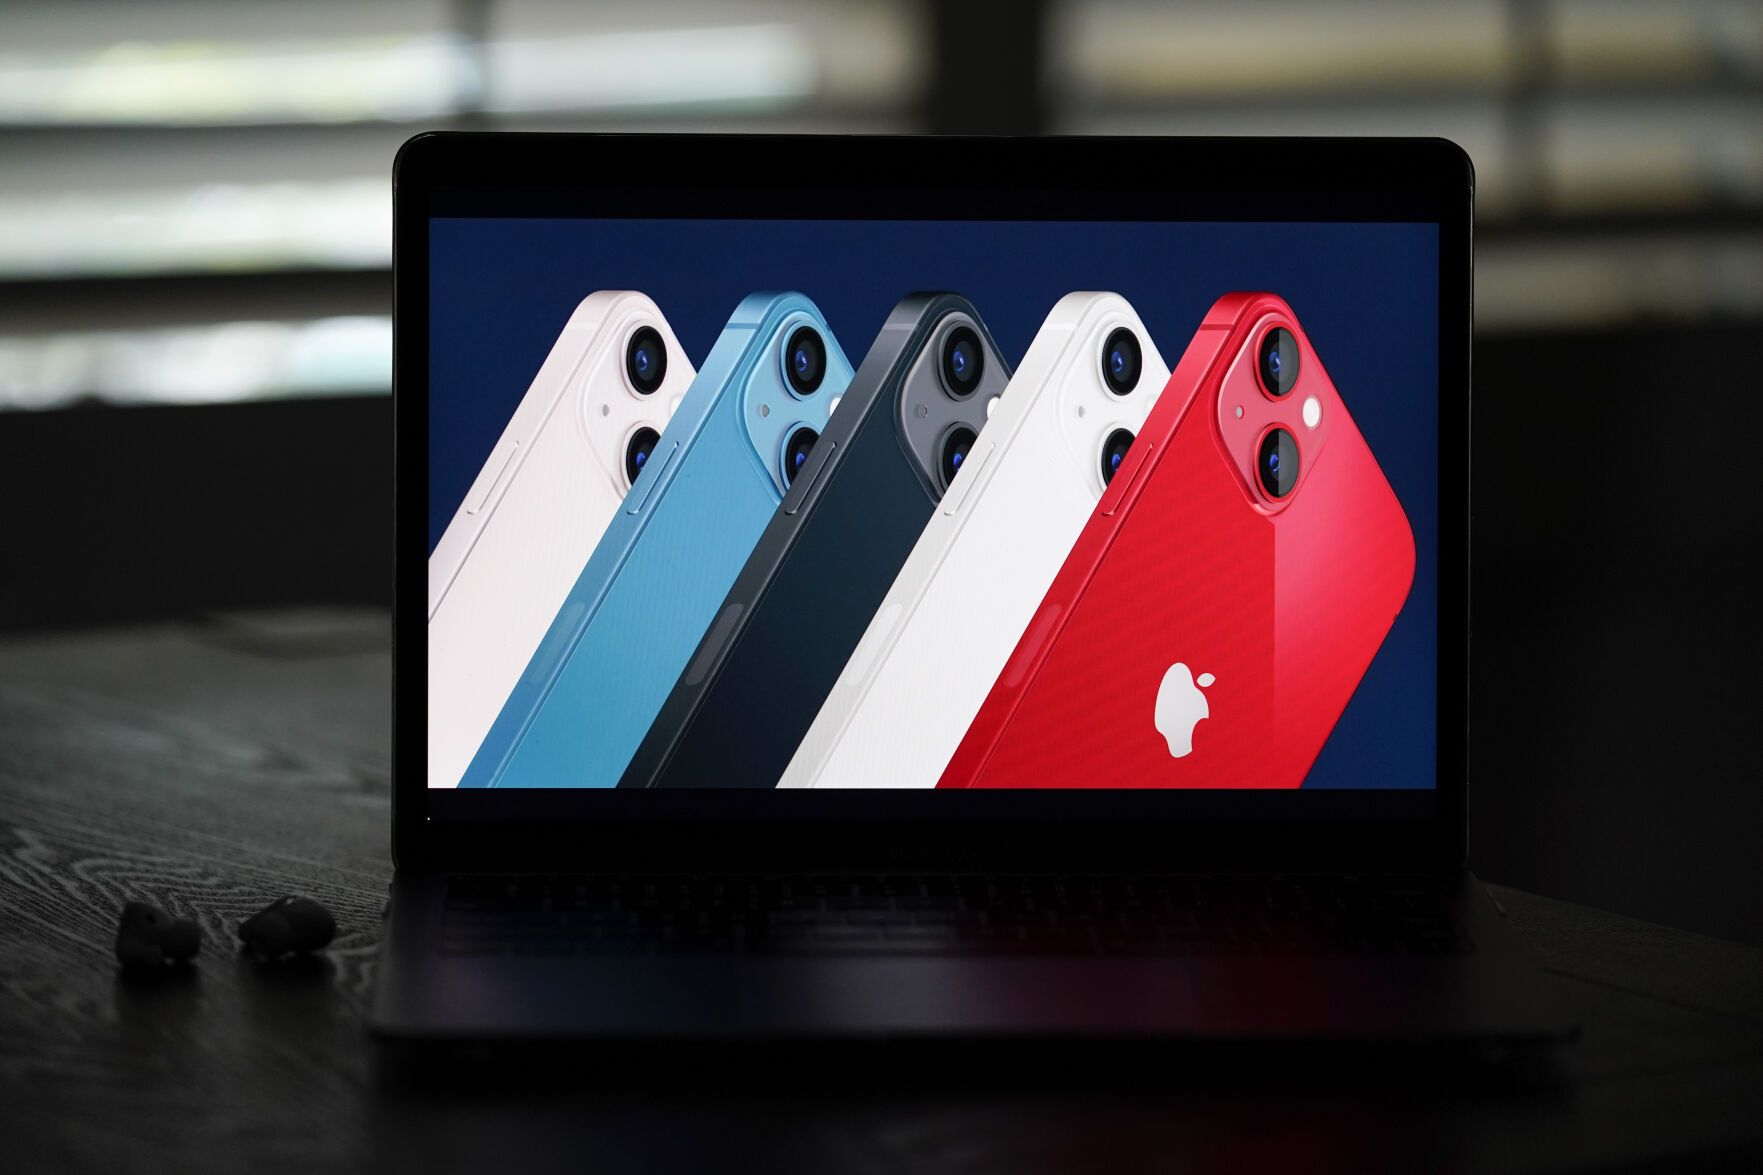 <p>Seen on the screen of a device in La Habra, Calif., new iPhone 13 smartphones are introduced during a virtual event held to announce new Apple products Tuesday, Sept. 14, 2021. (AP Photo/Jae C. Hong)</p>